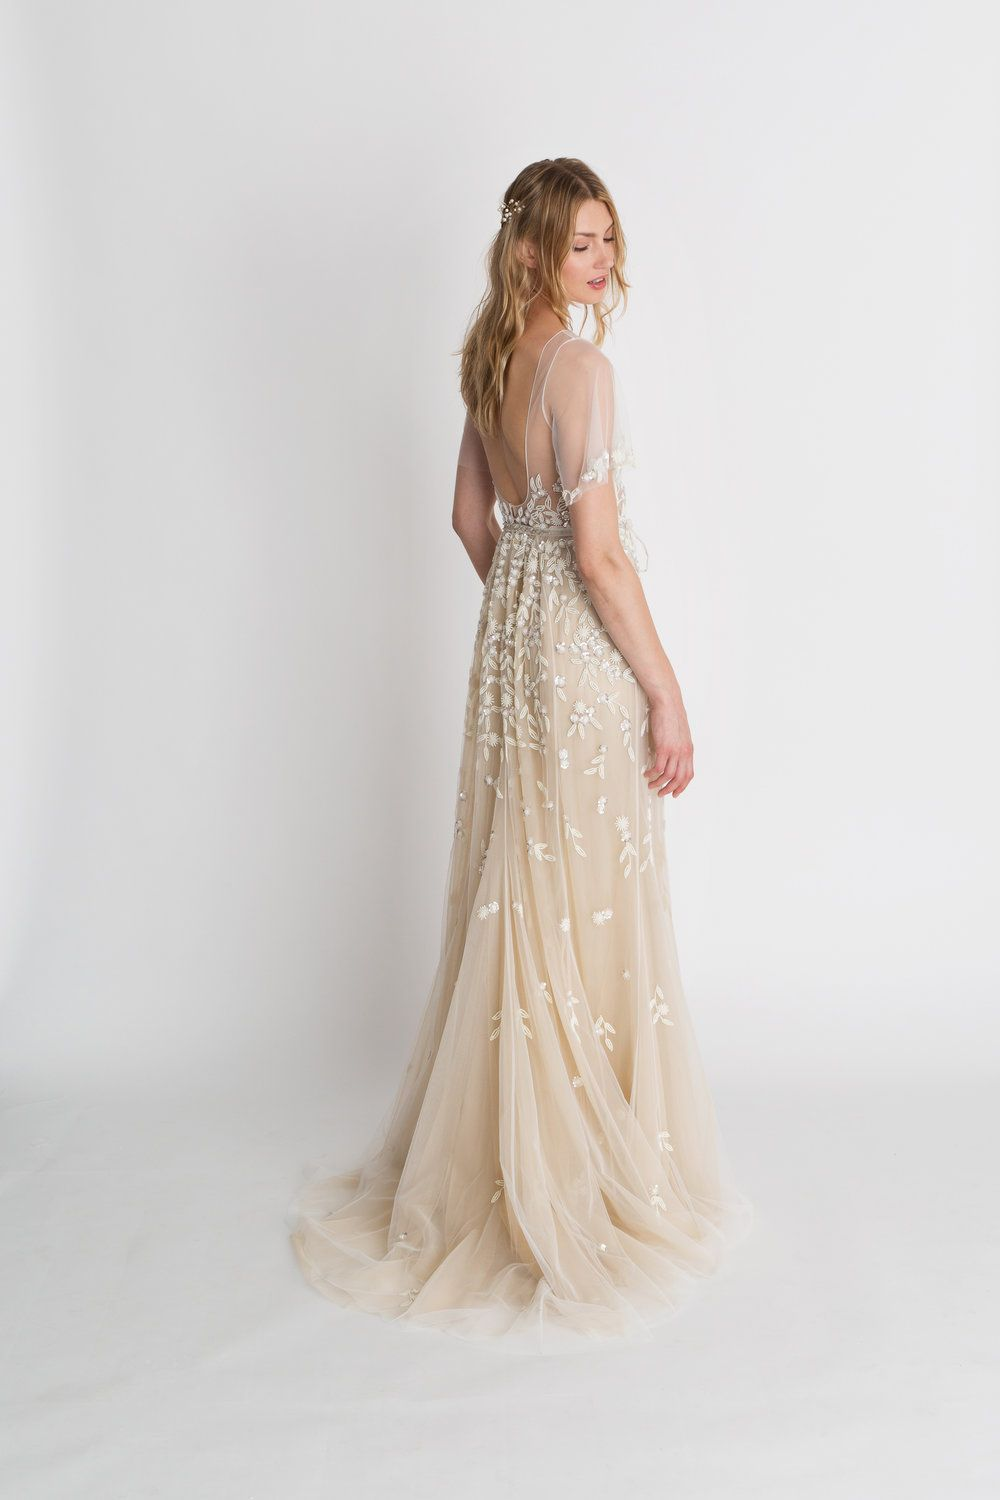 Cute wedding reception dresses for the bride  Pin by Ally Duffey on Wedding in   Pinterest  Gowns Beautiful